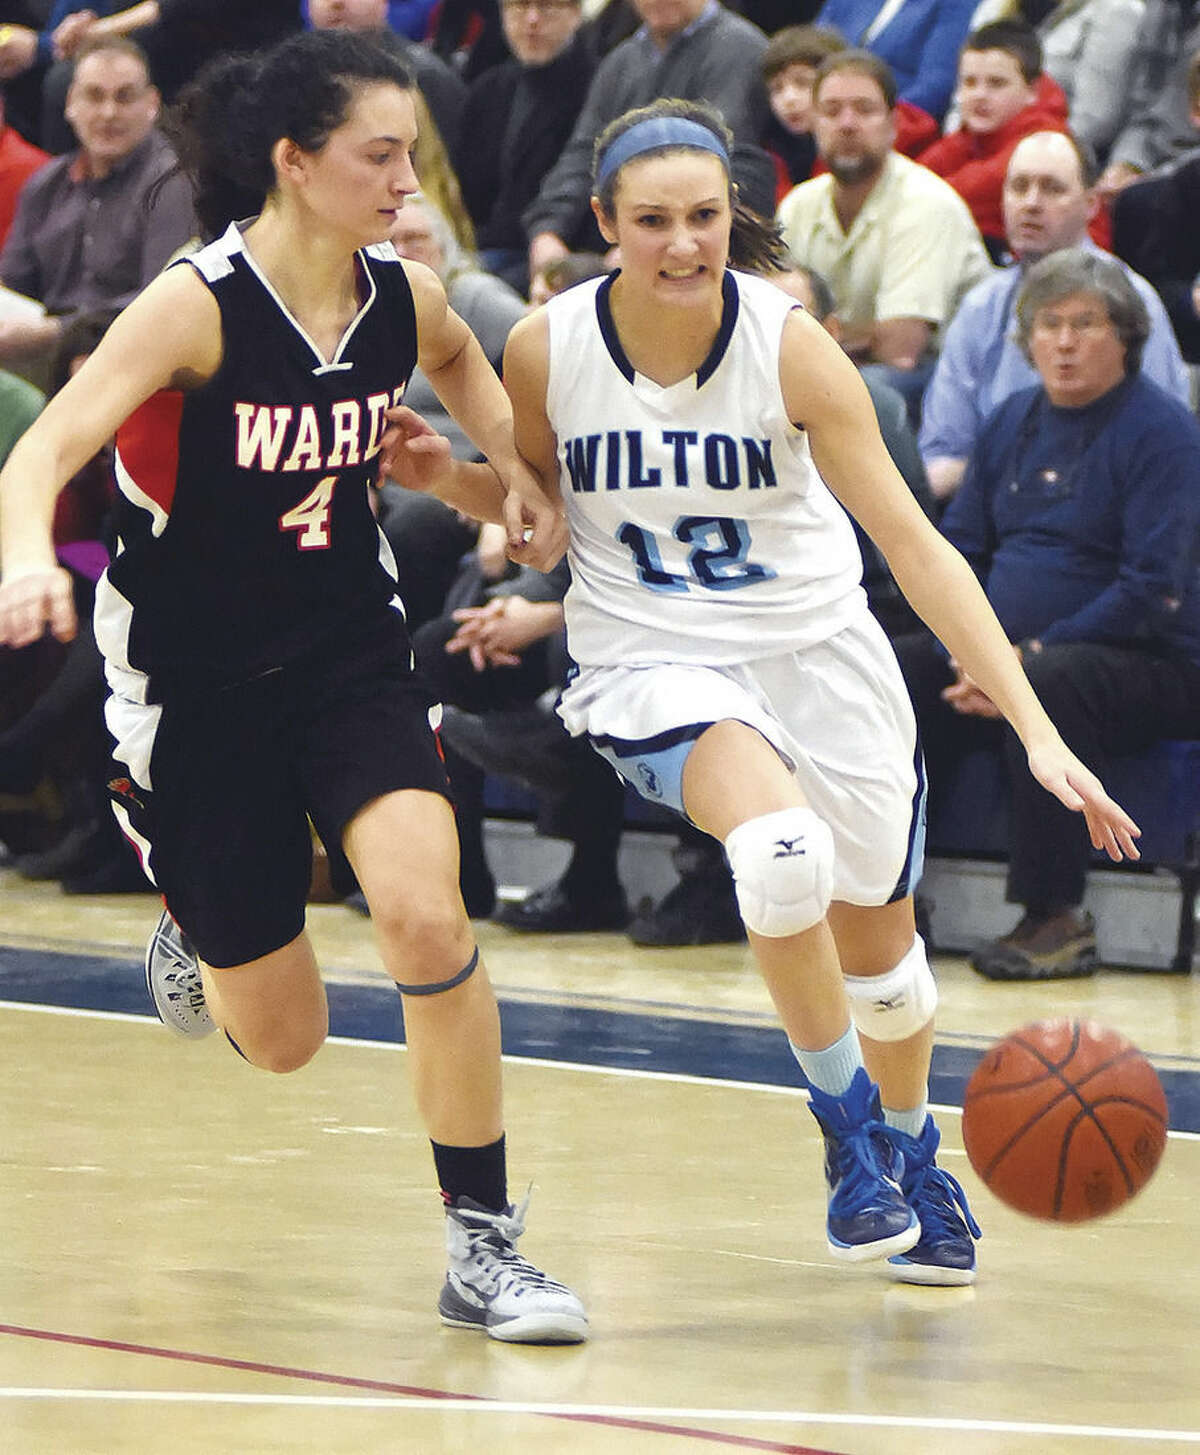 Hour photo/John Nash Haley English of Wilton, right, pushes the ball past Fairfield Warde's Lejla Markovic during the second half of Wednesday's regular season FCIAC finale at the Zeoli Field House.